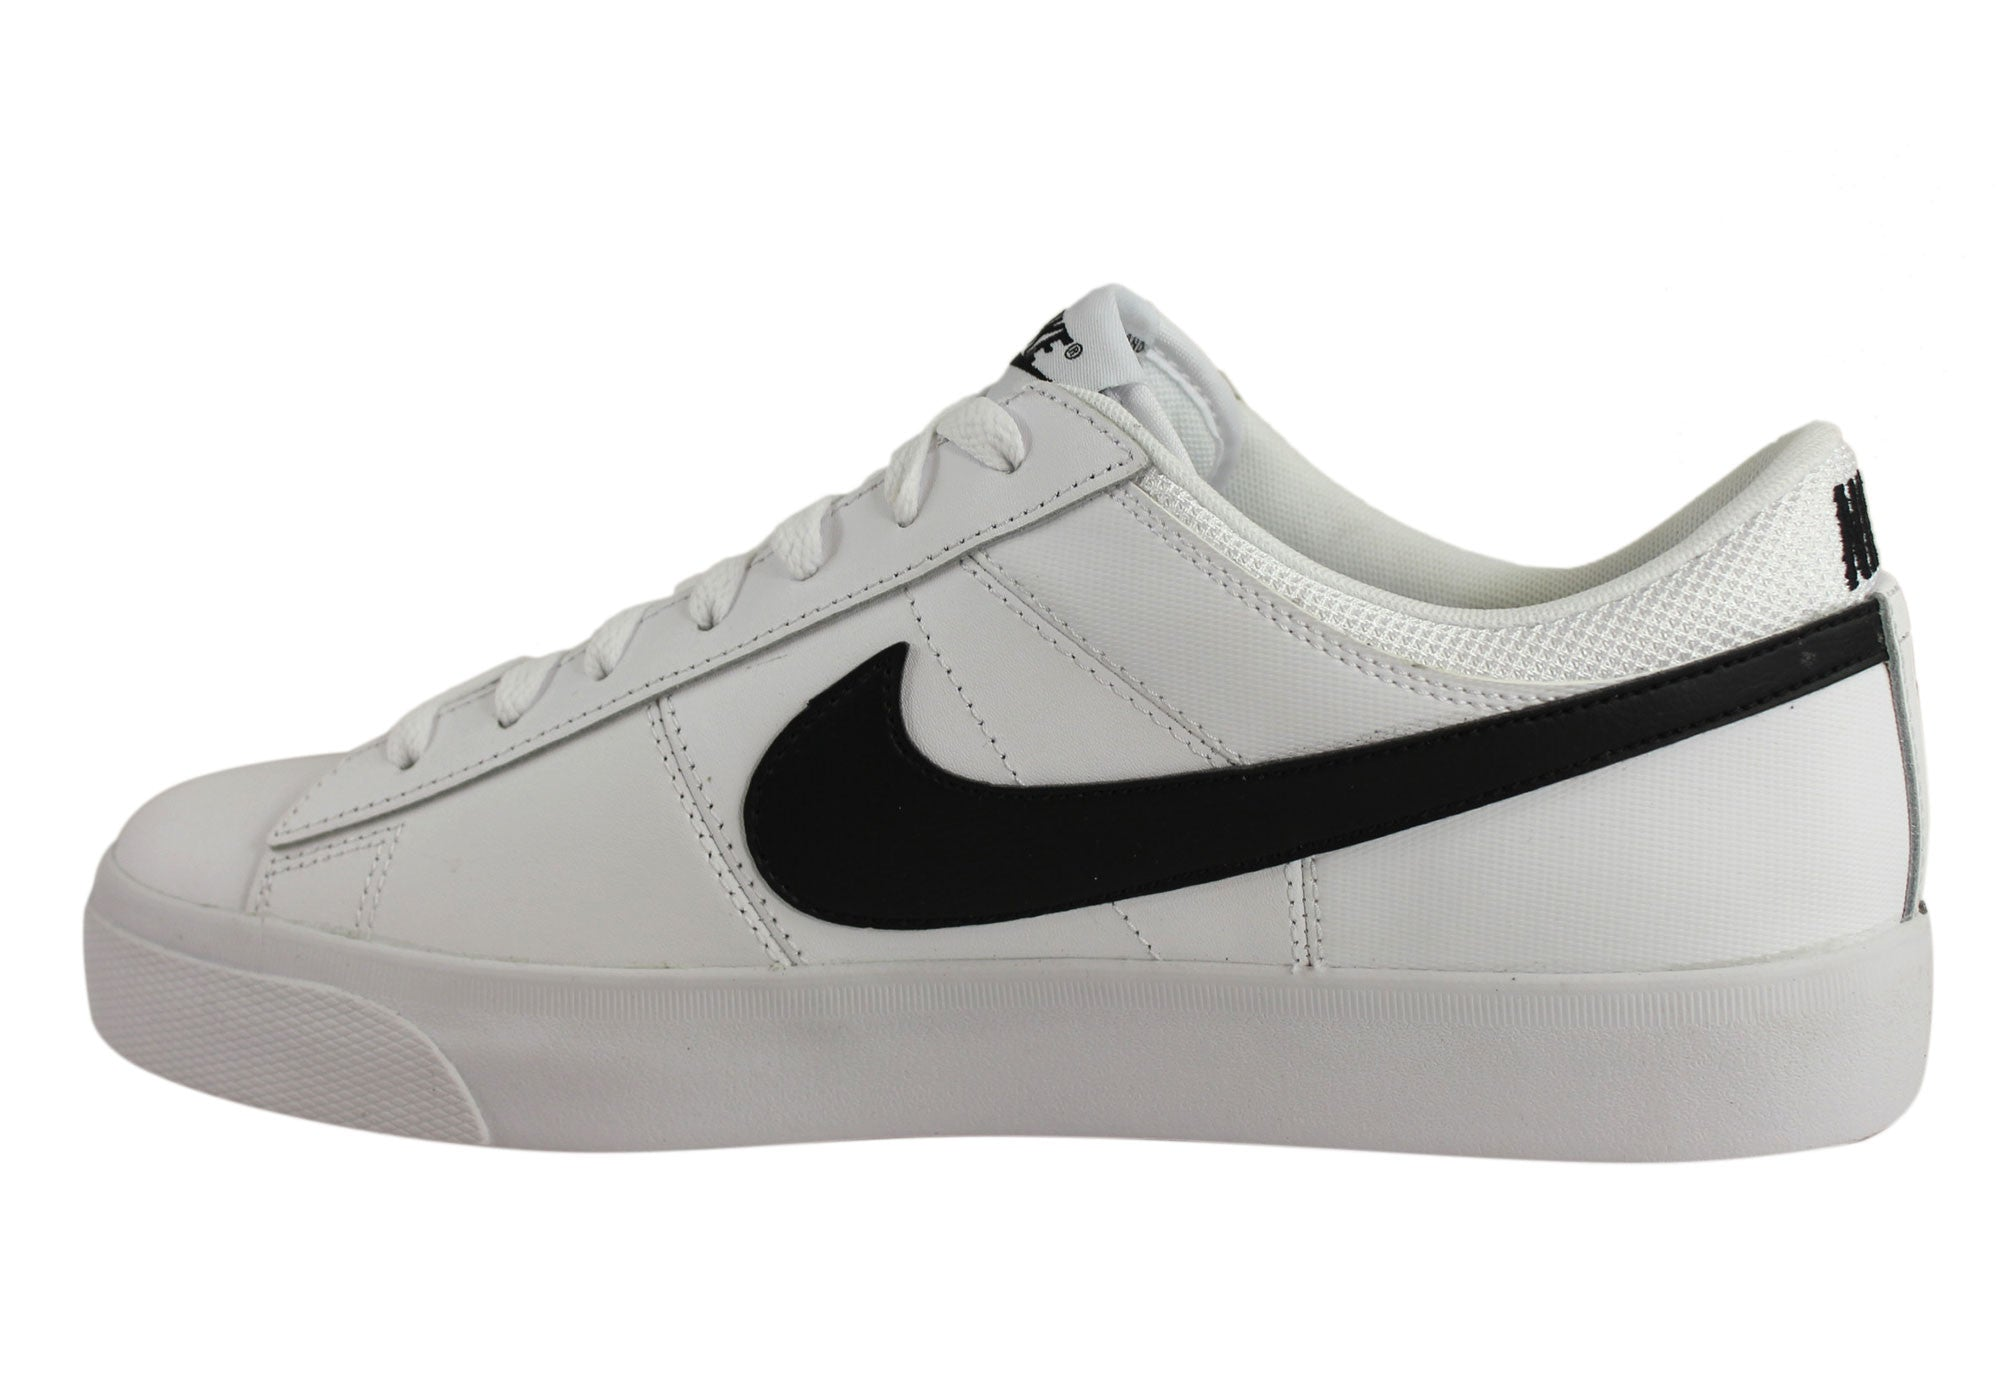 696bb4163a12 Nike Match Supreme Leather Mens Lace Up Tennis Casual Shoes